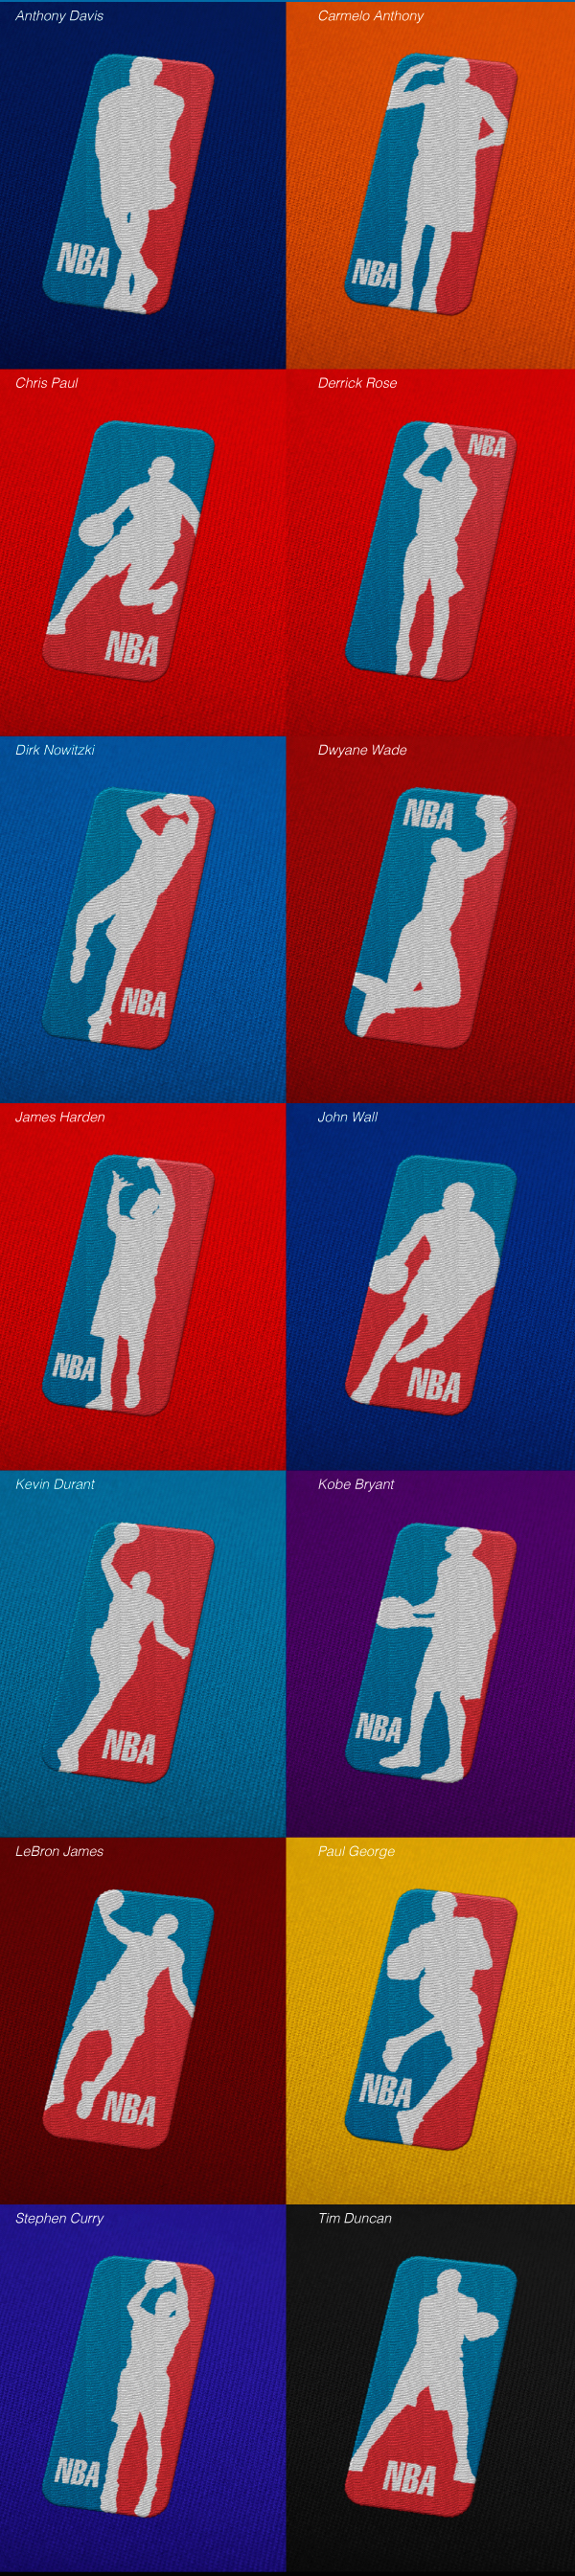 NBA Logo Redux Project